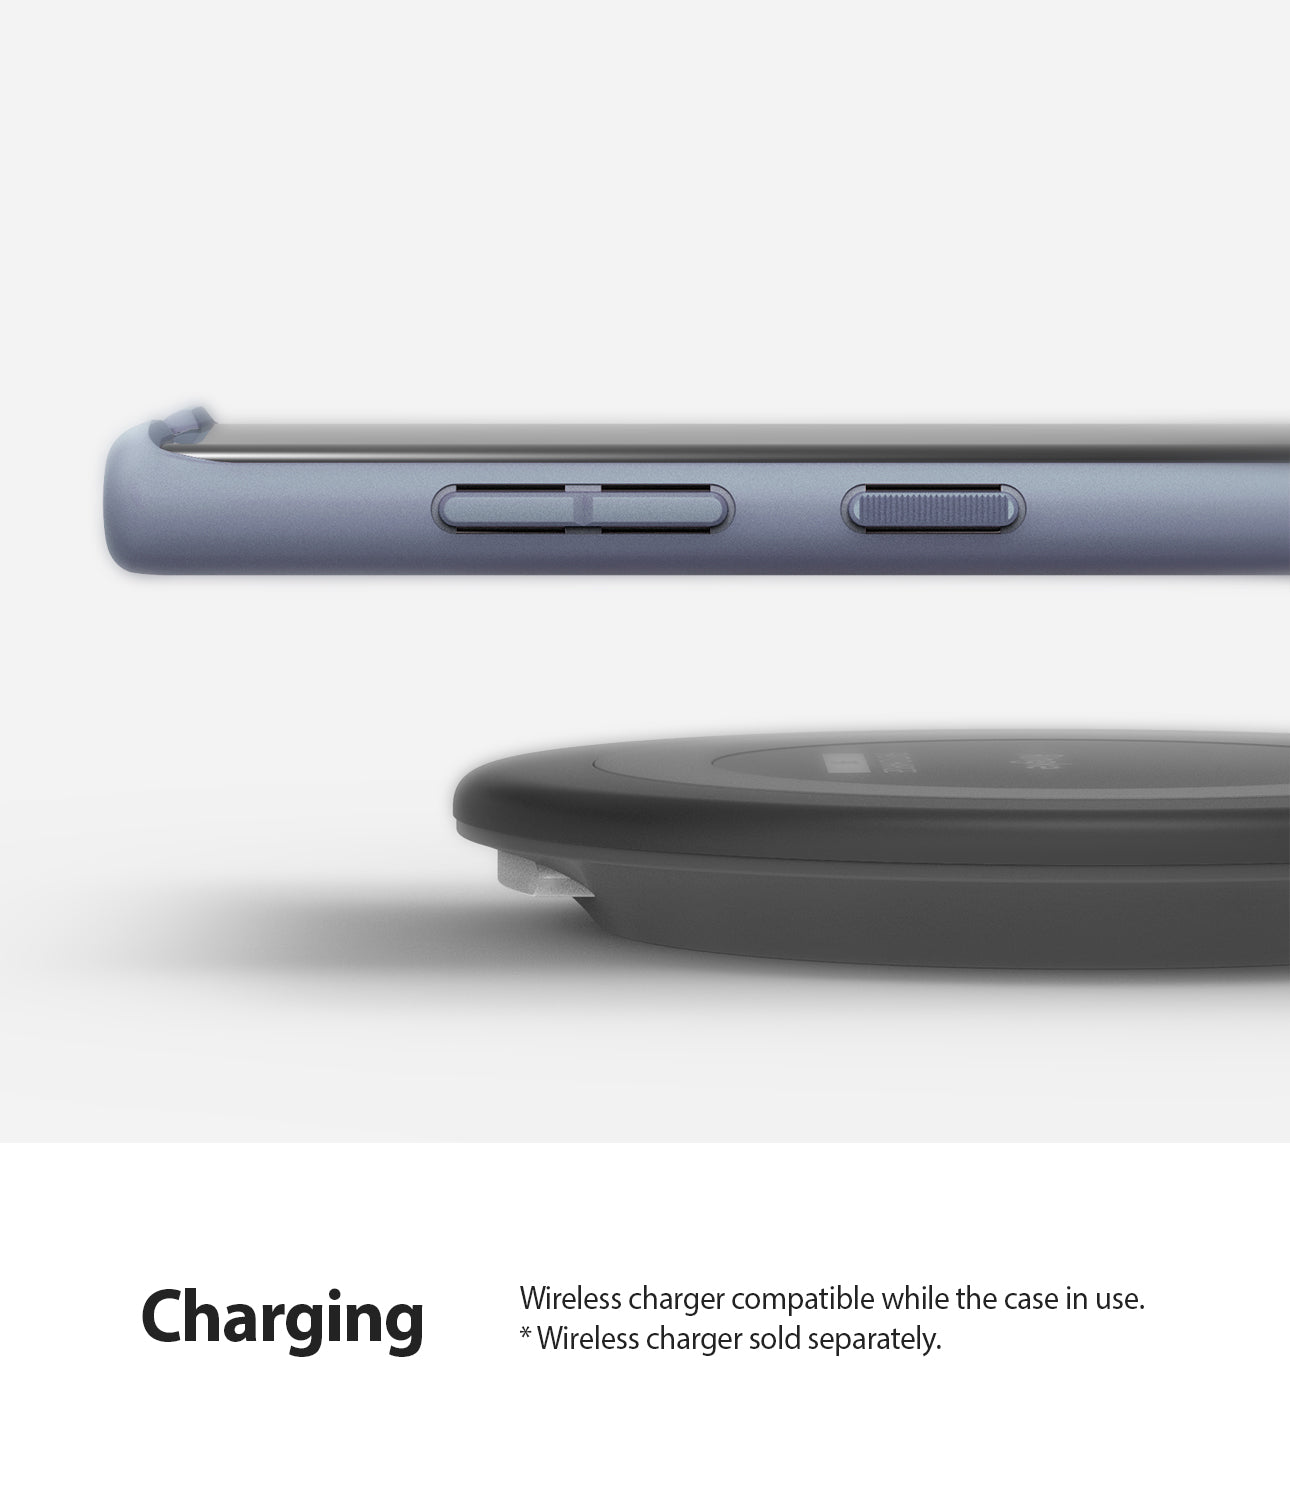 wireless charge and powershare compatible without removing the case